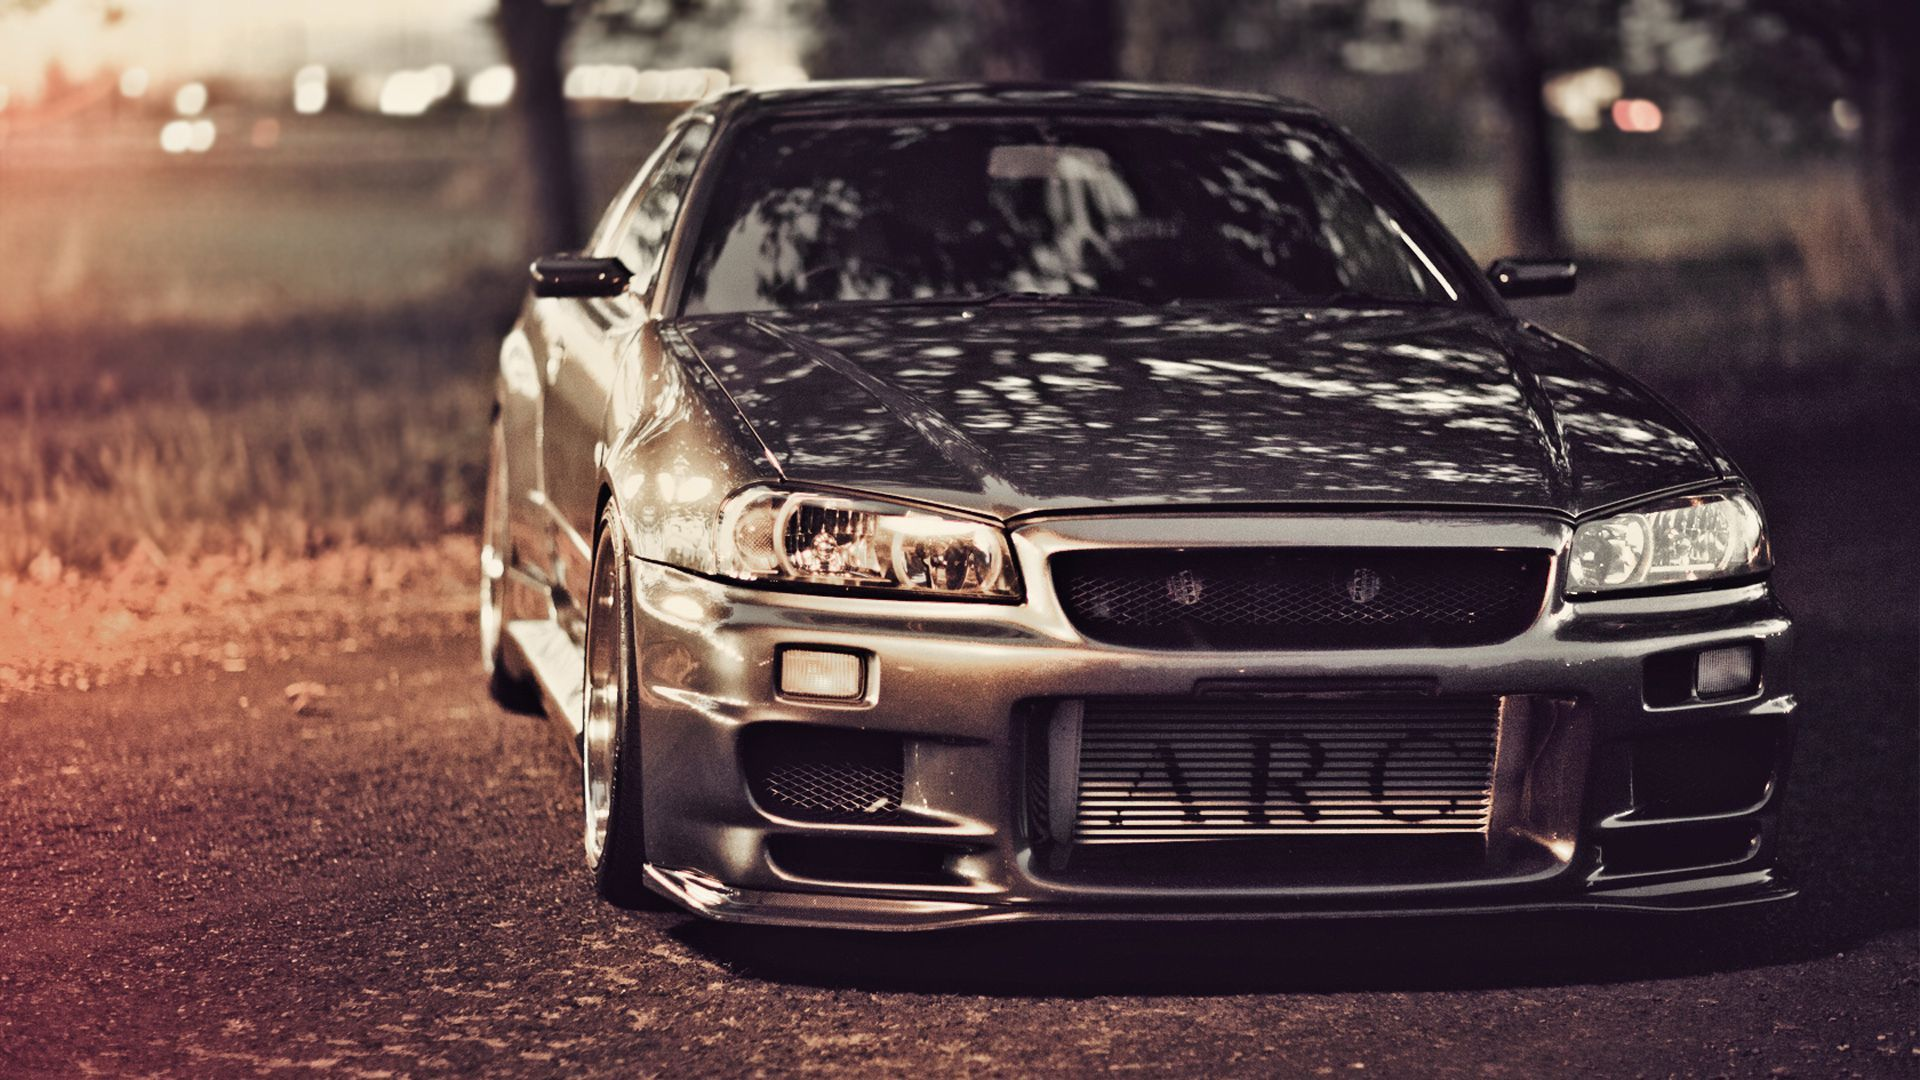 nissan skyline gtr r34 wallpapers - wallpaper cave | adorable